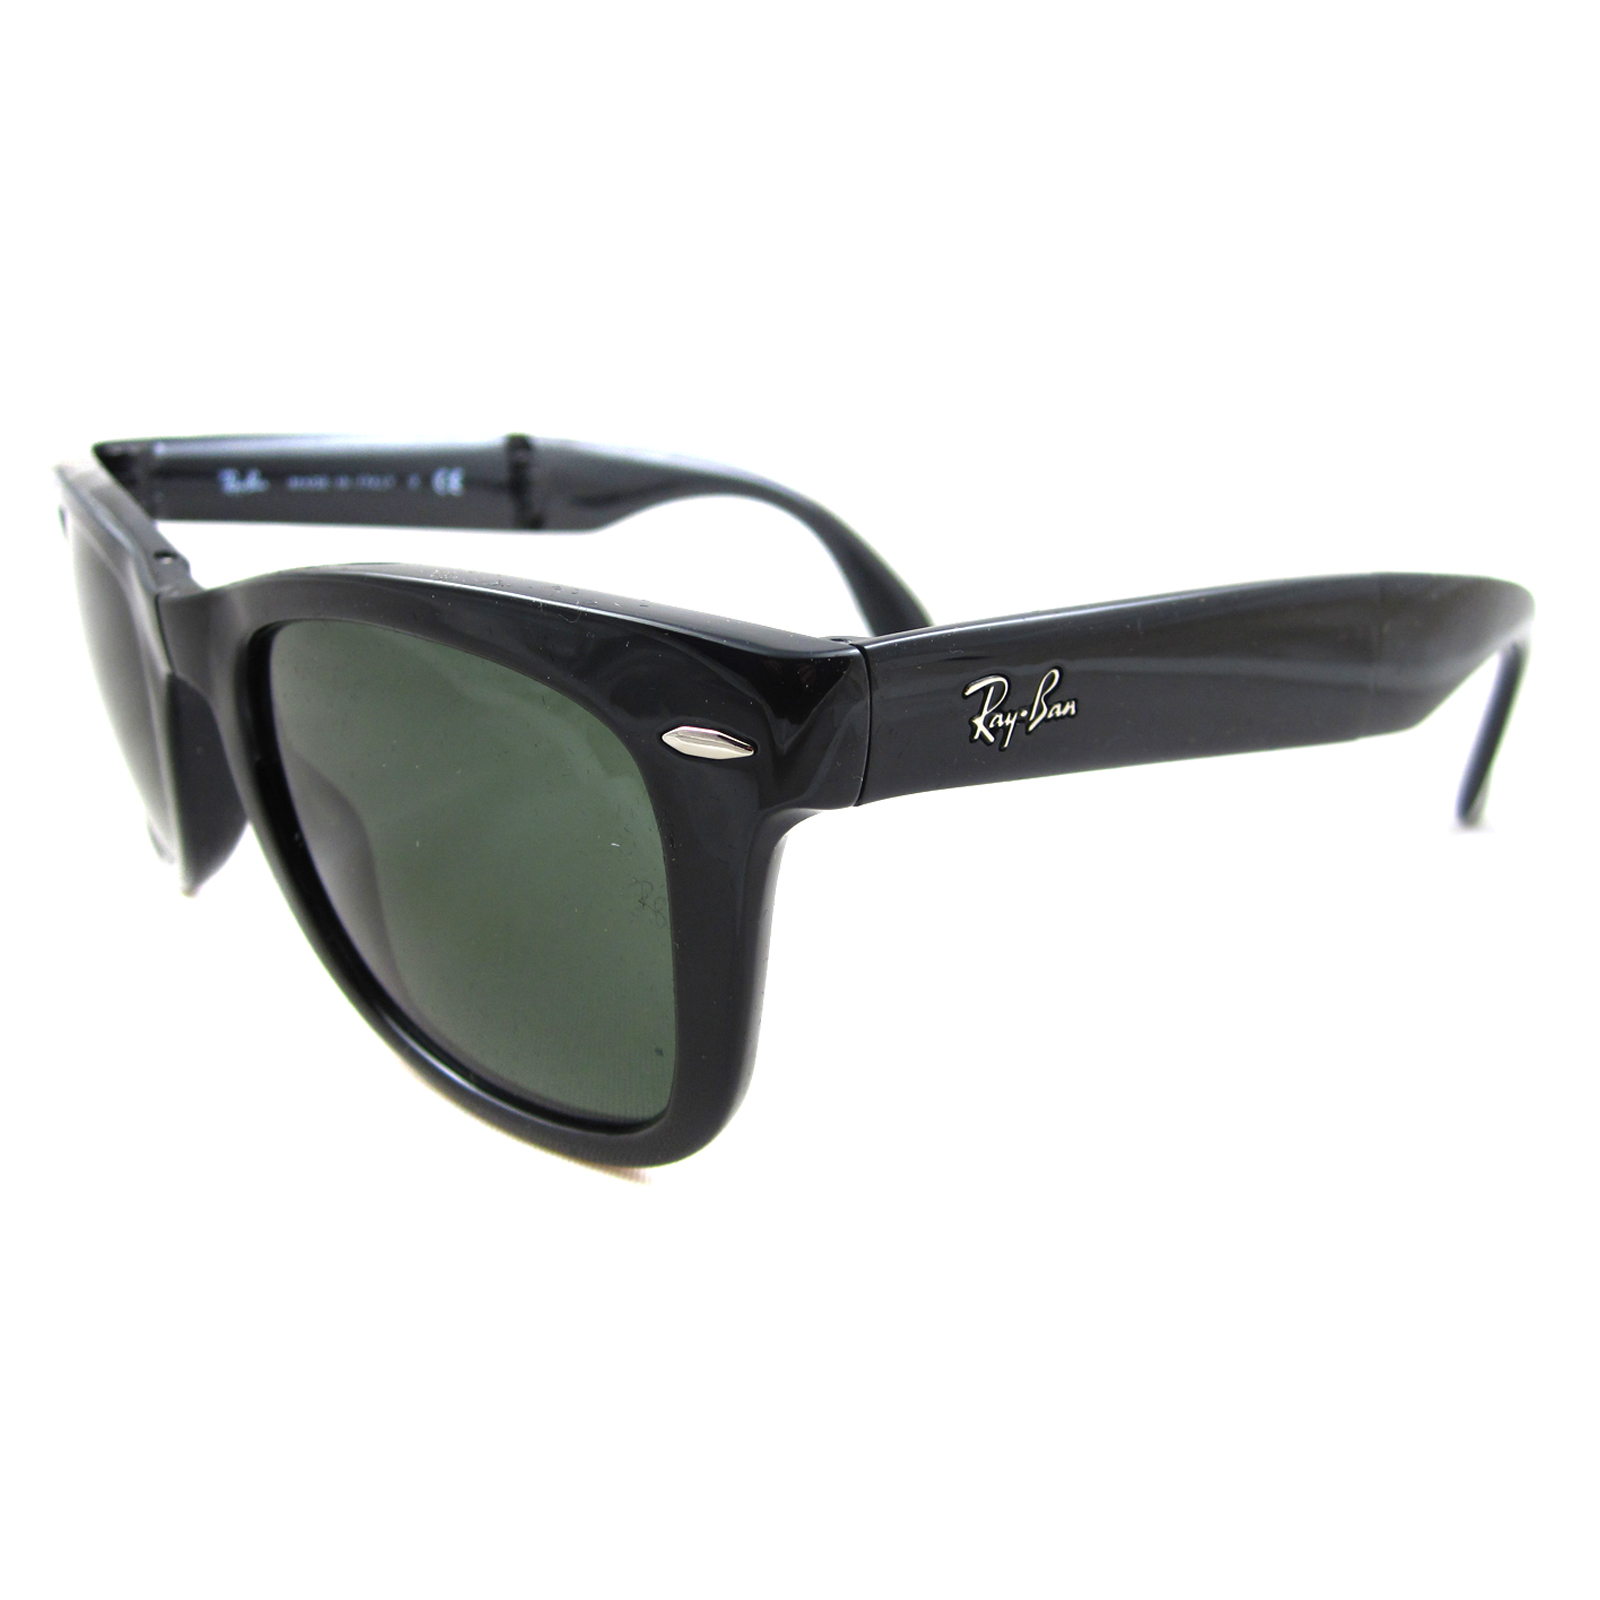 branded sunglasses online shopping  sunglasses come